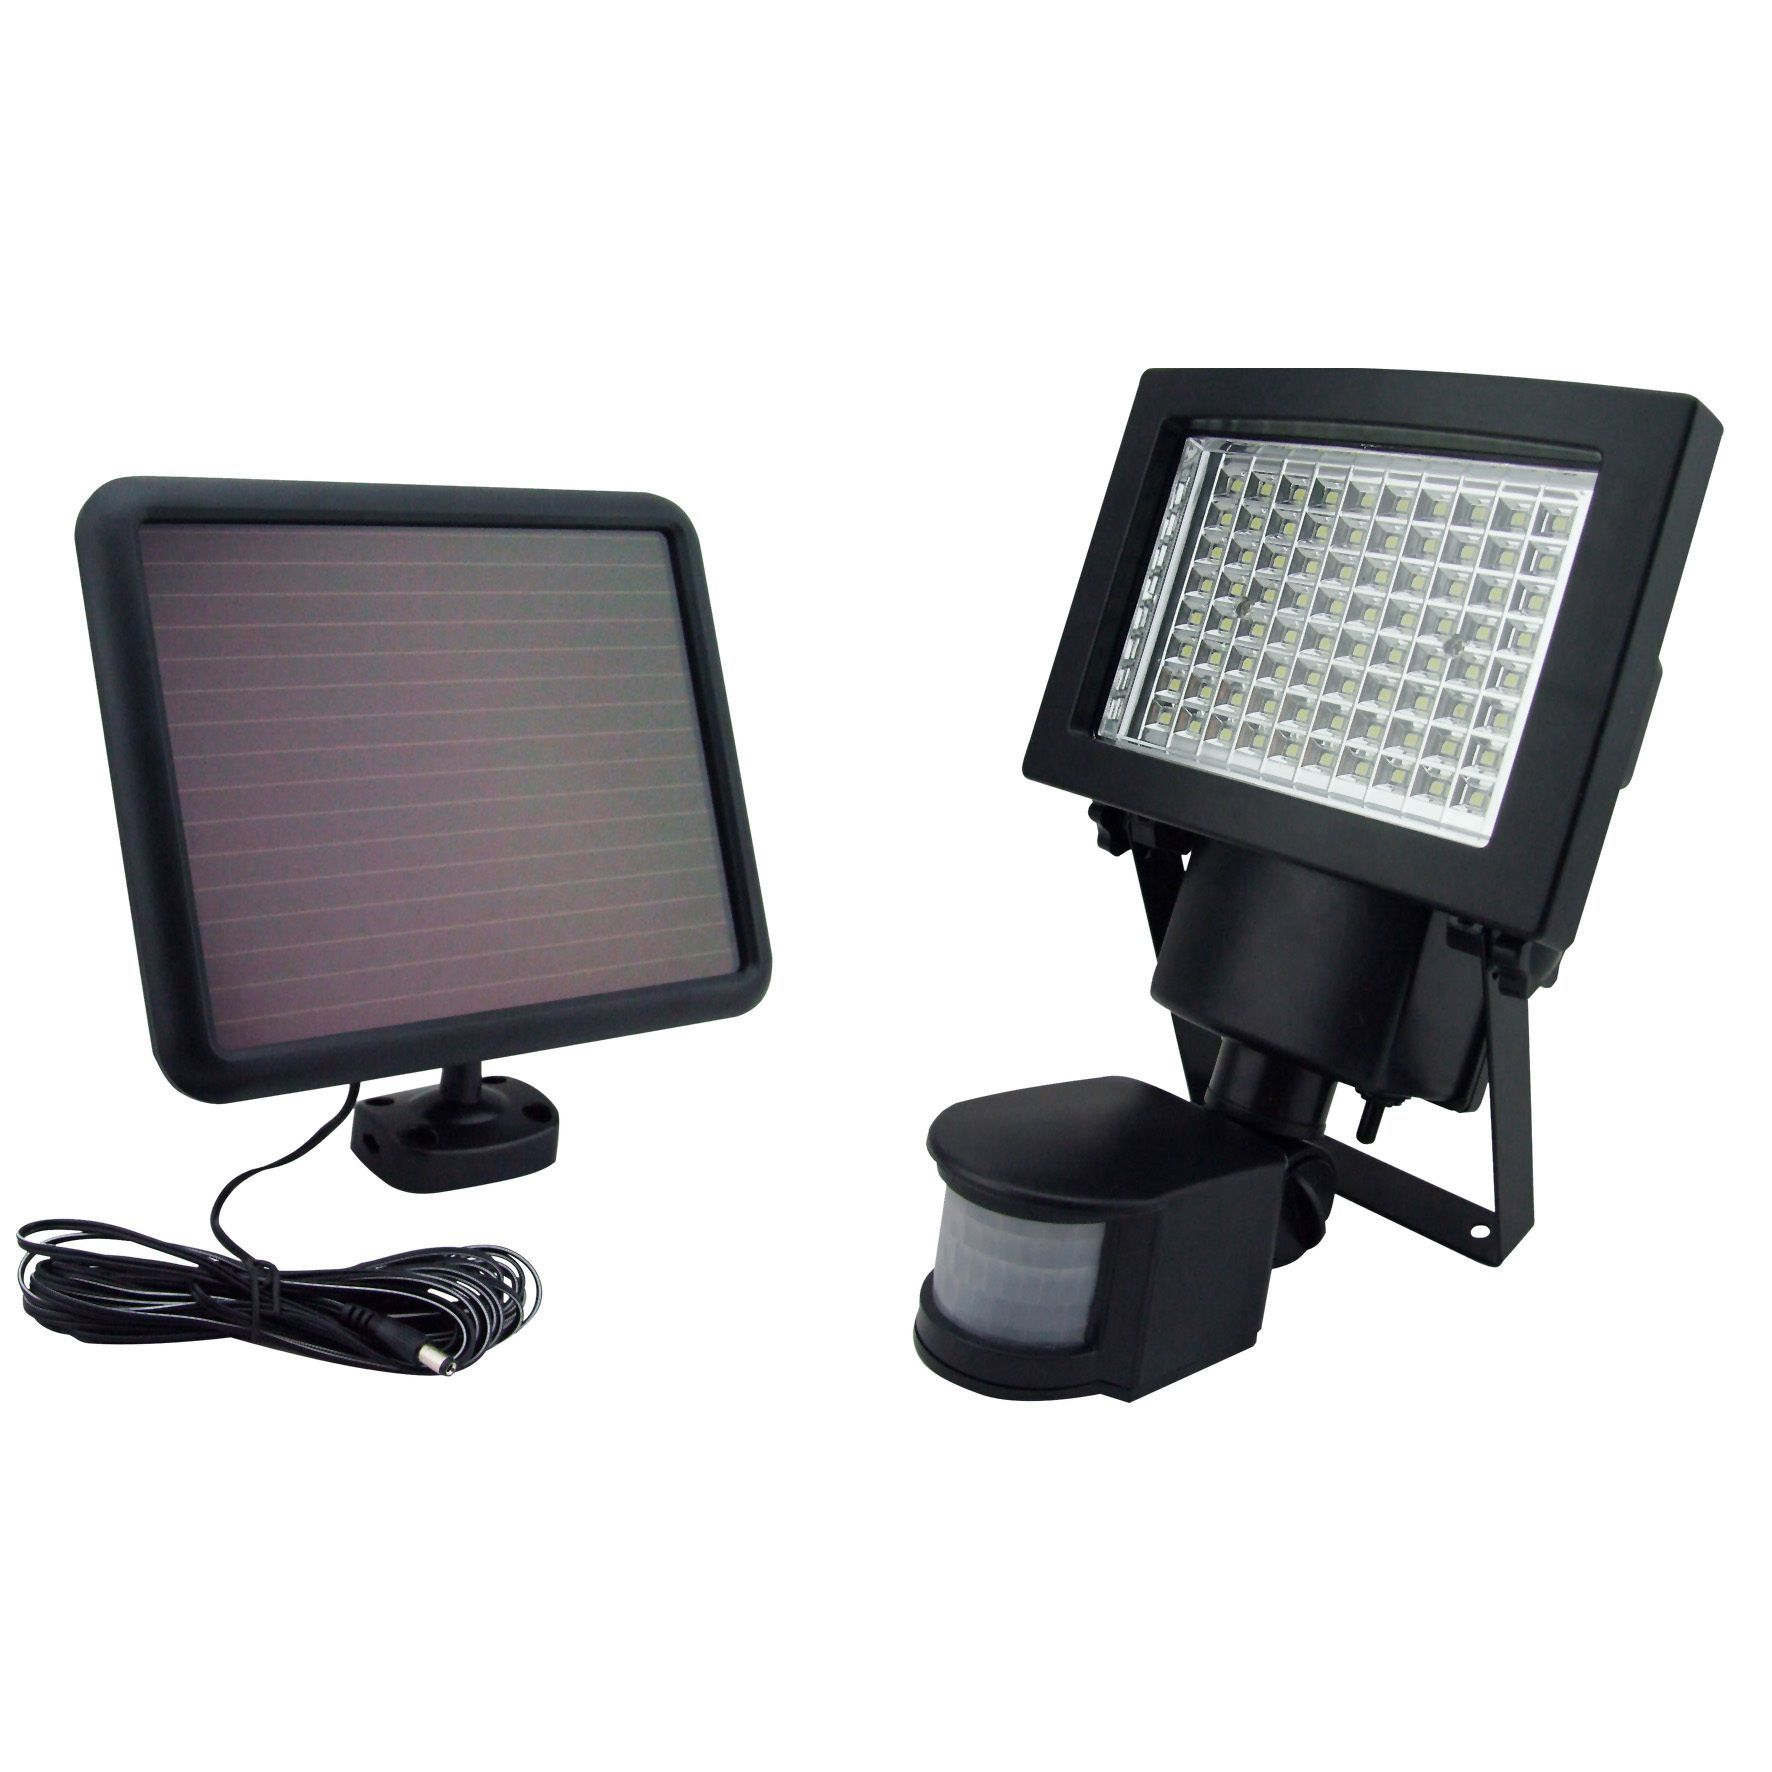 Outdoor Led Motion Lights New Sontax Outdoor Solar Powered 80 Led Motion Light Security Flood Lamp Design Ideas